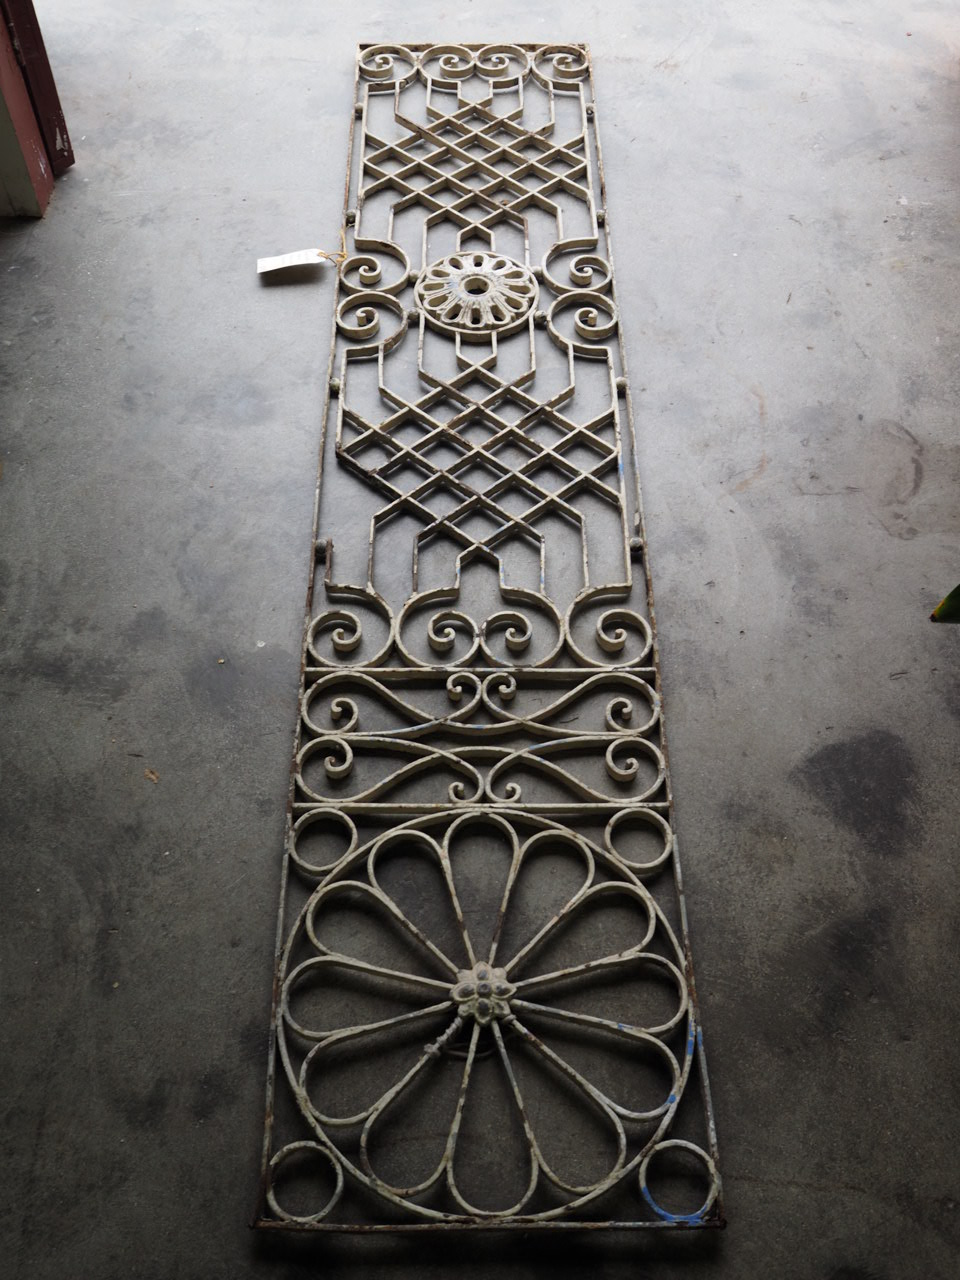 Early 20th Century Ottoman grille, c.1900.